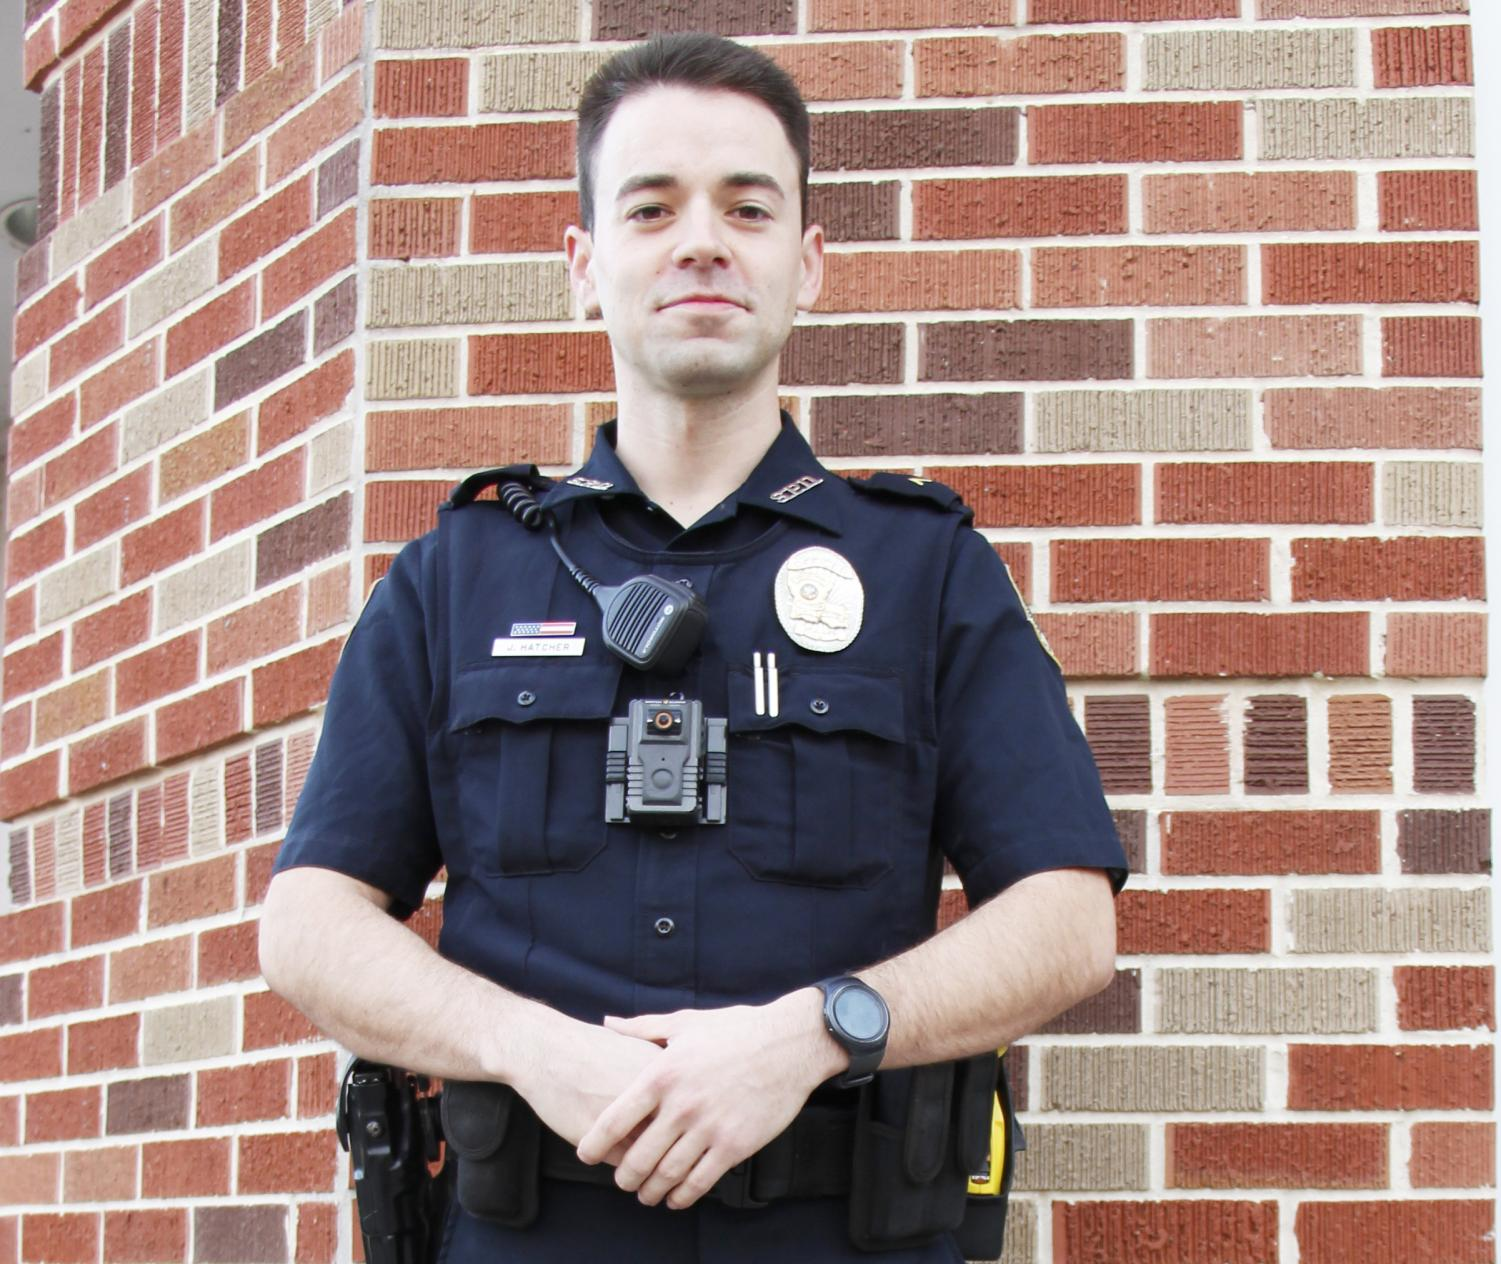 The University Police Department named Jourdan Hatcher the 2018 Officer of the Year. Recently, Hatcher completed Field Training Officer School, certifying him to train other officers in the performance of their duties.